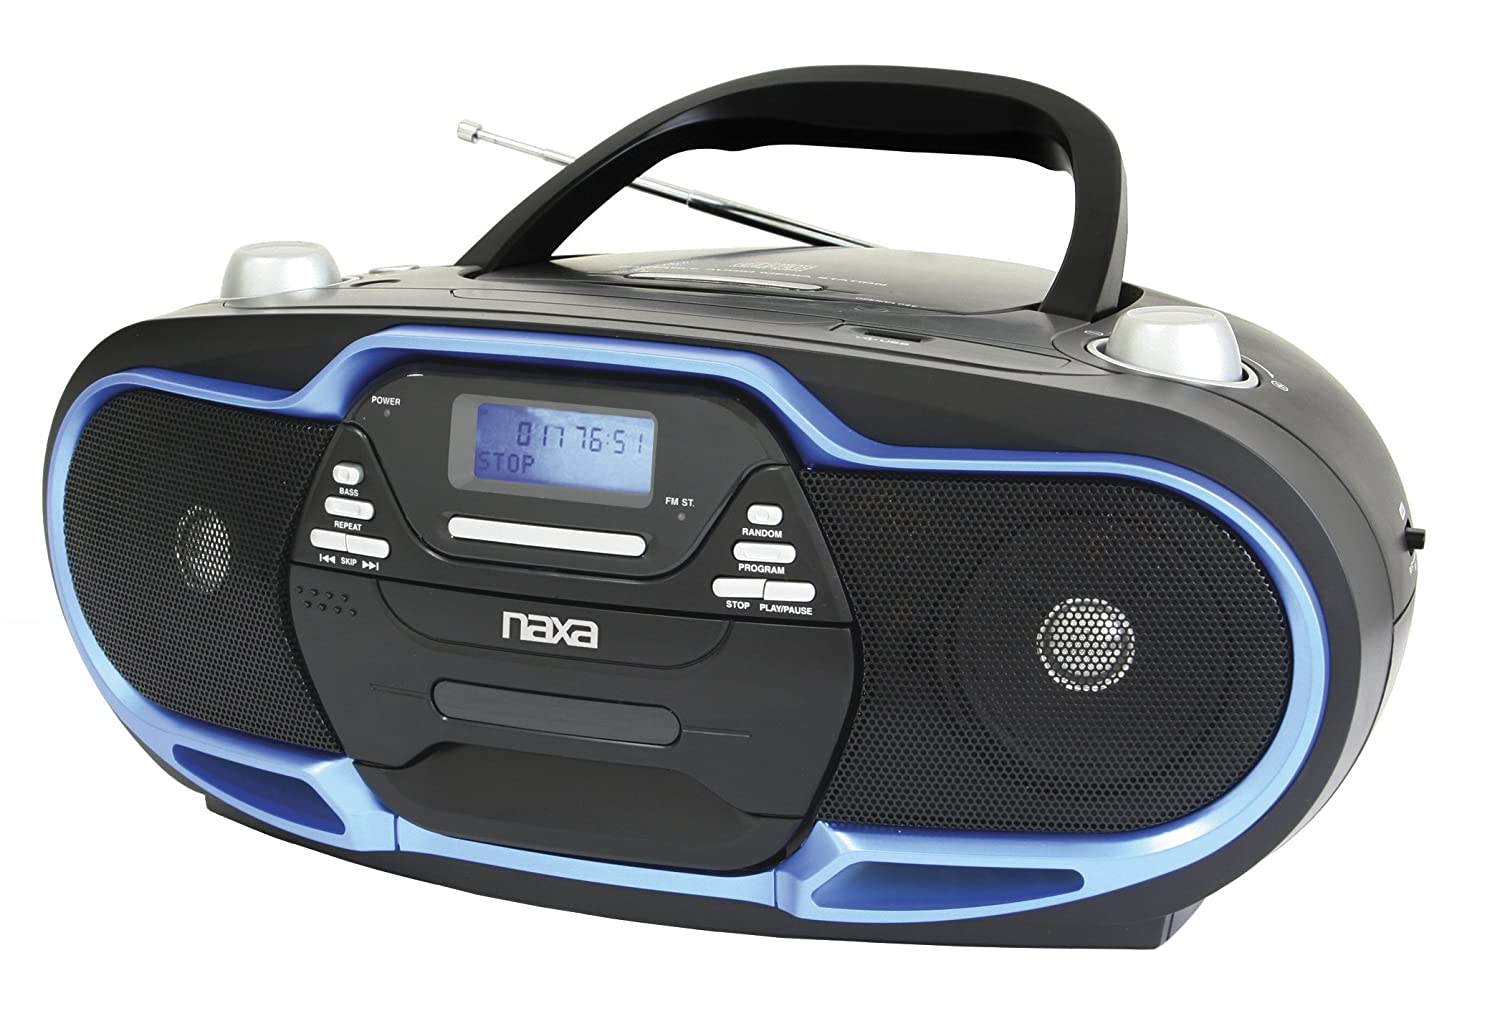 naxa portable mp3 cd player am fm stereo radio usb input. Black Bedroom Furniture Sets. Home Design Ideas